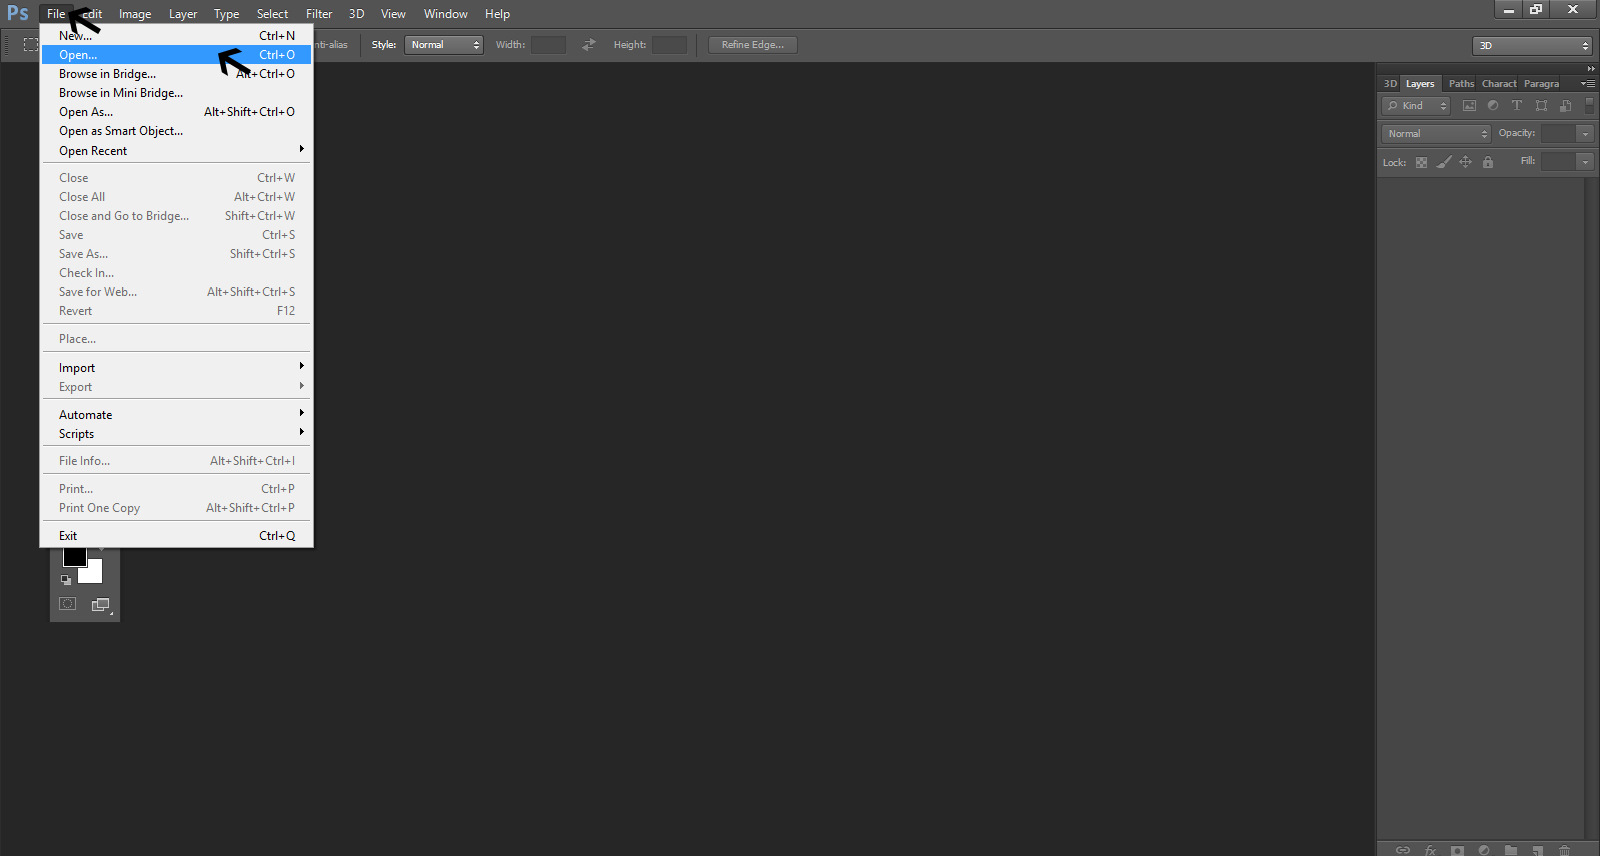 How To Remove Background From An Image In Photoshop1